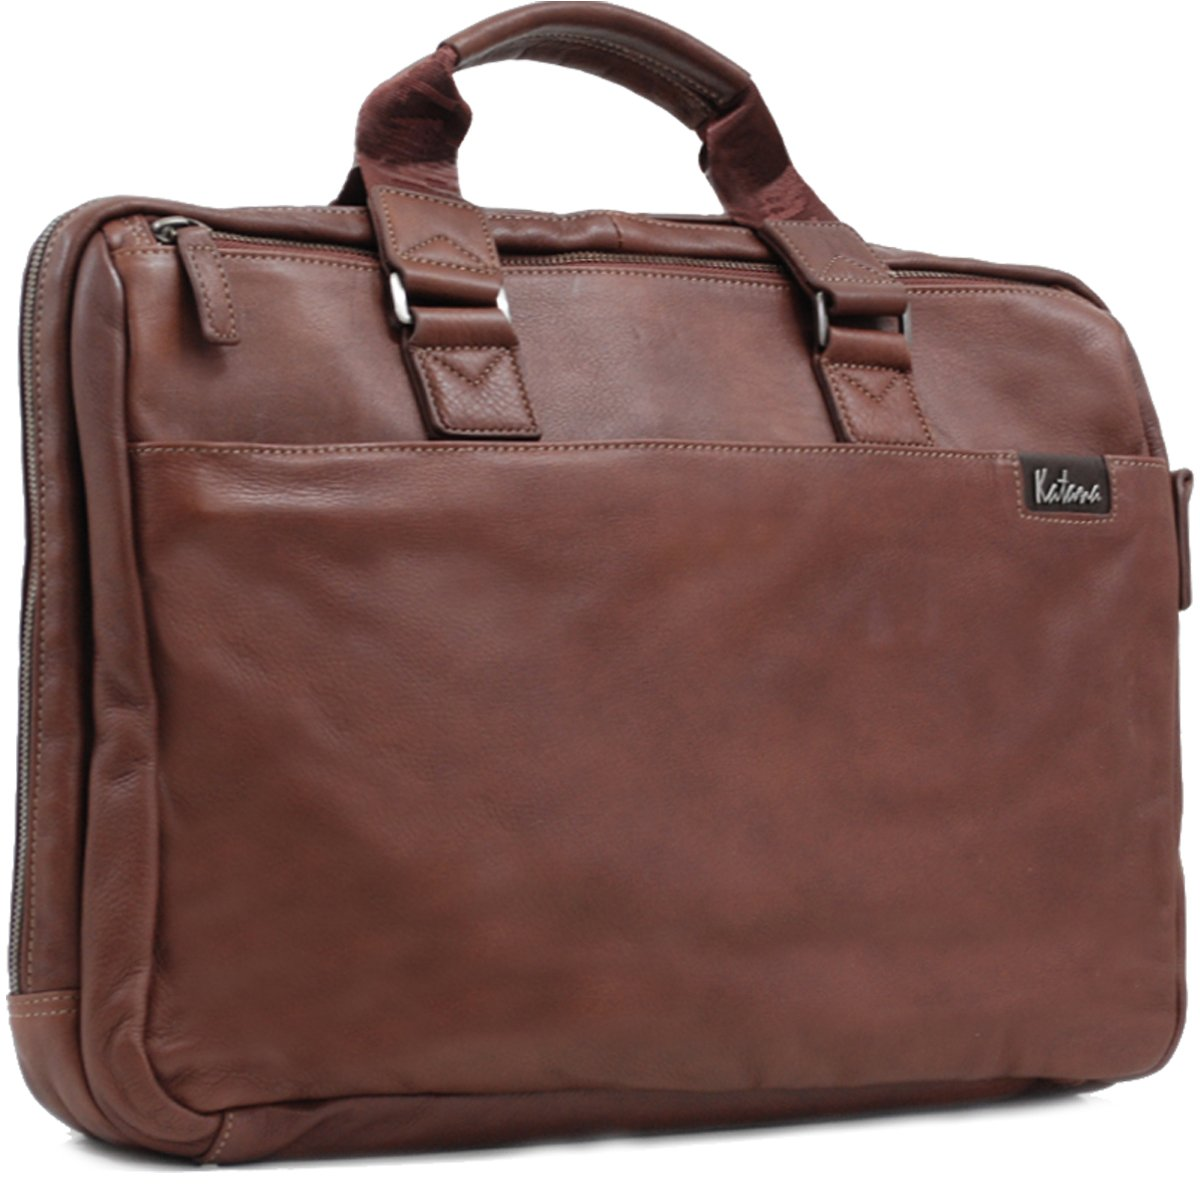 Cartable souple Cuir de vachette - Marron